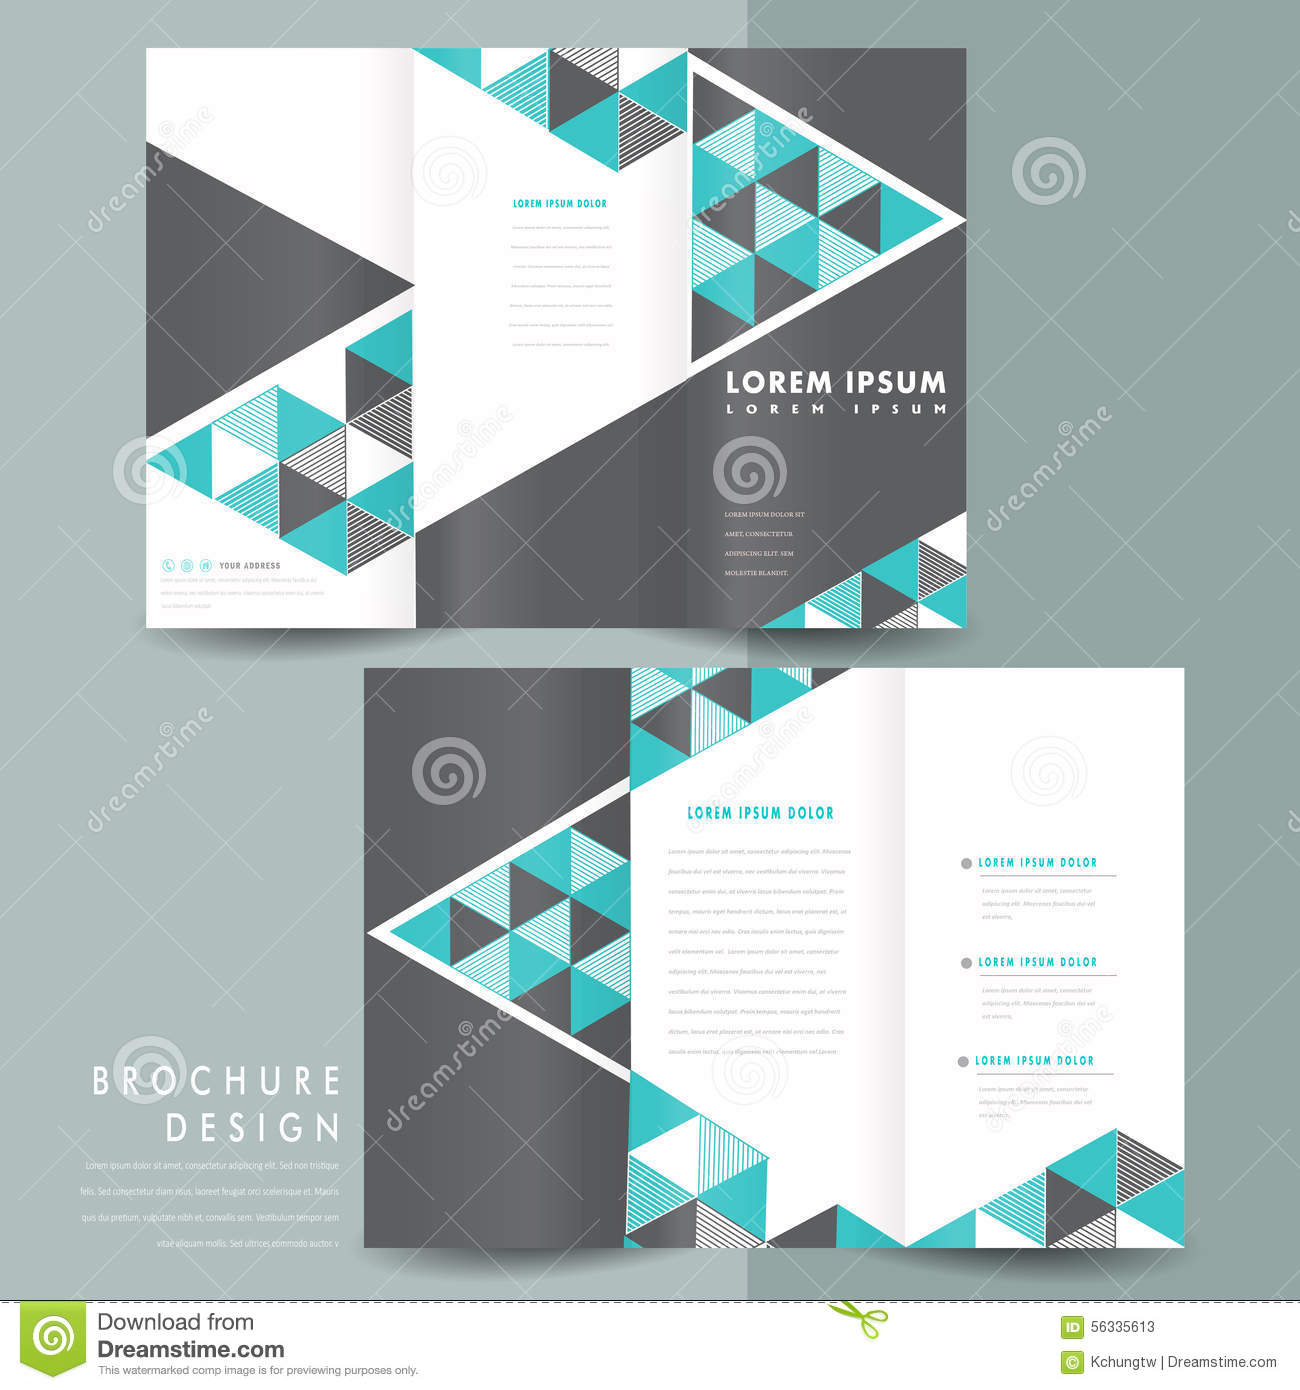 Cute 1 Week Schedule Template Thin 10 Steps To Creating An Effective Resume Rectangular 1099 Excel Template 11x17 Poster Template Young 12 Piece Puzzle Template White13b Porting Templates 3 Fold Flyer Template Word Templates Flyers